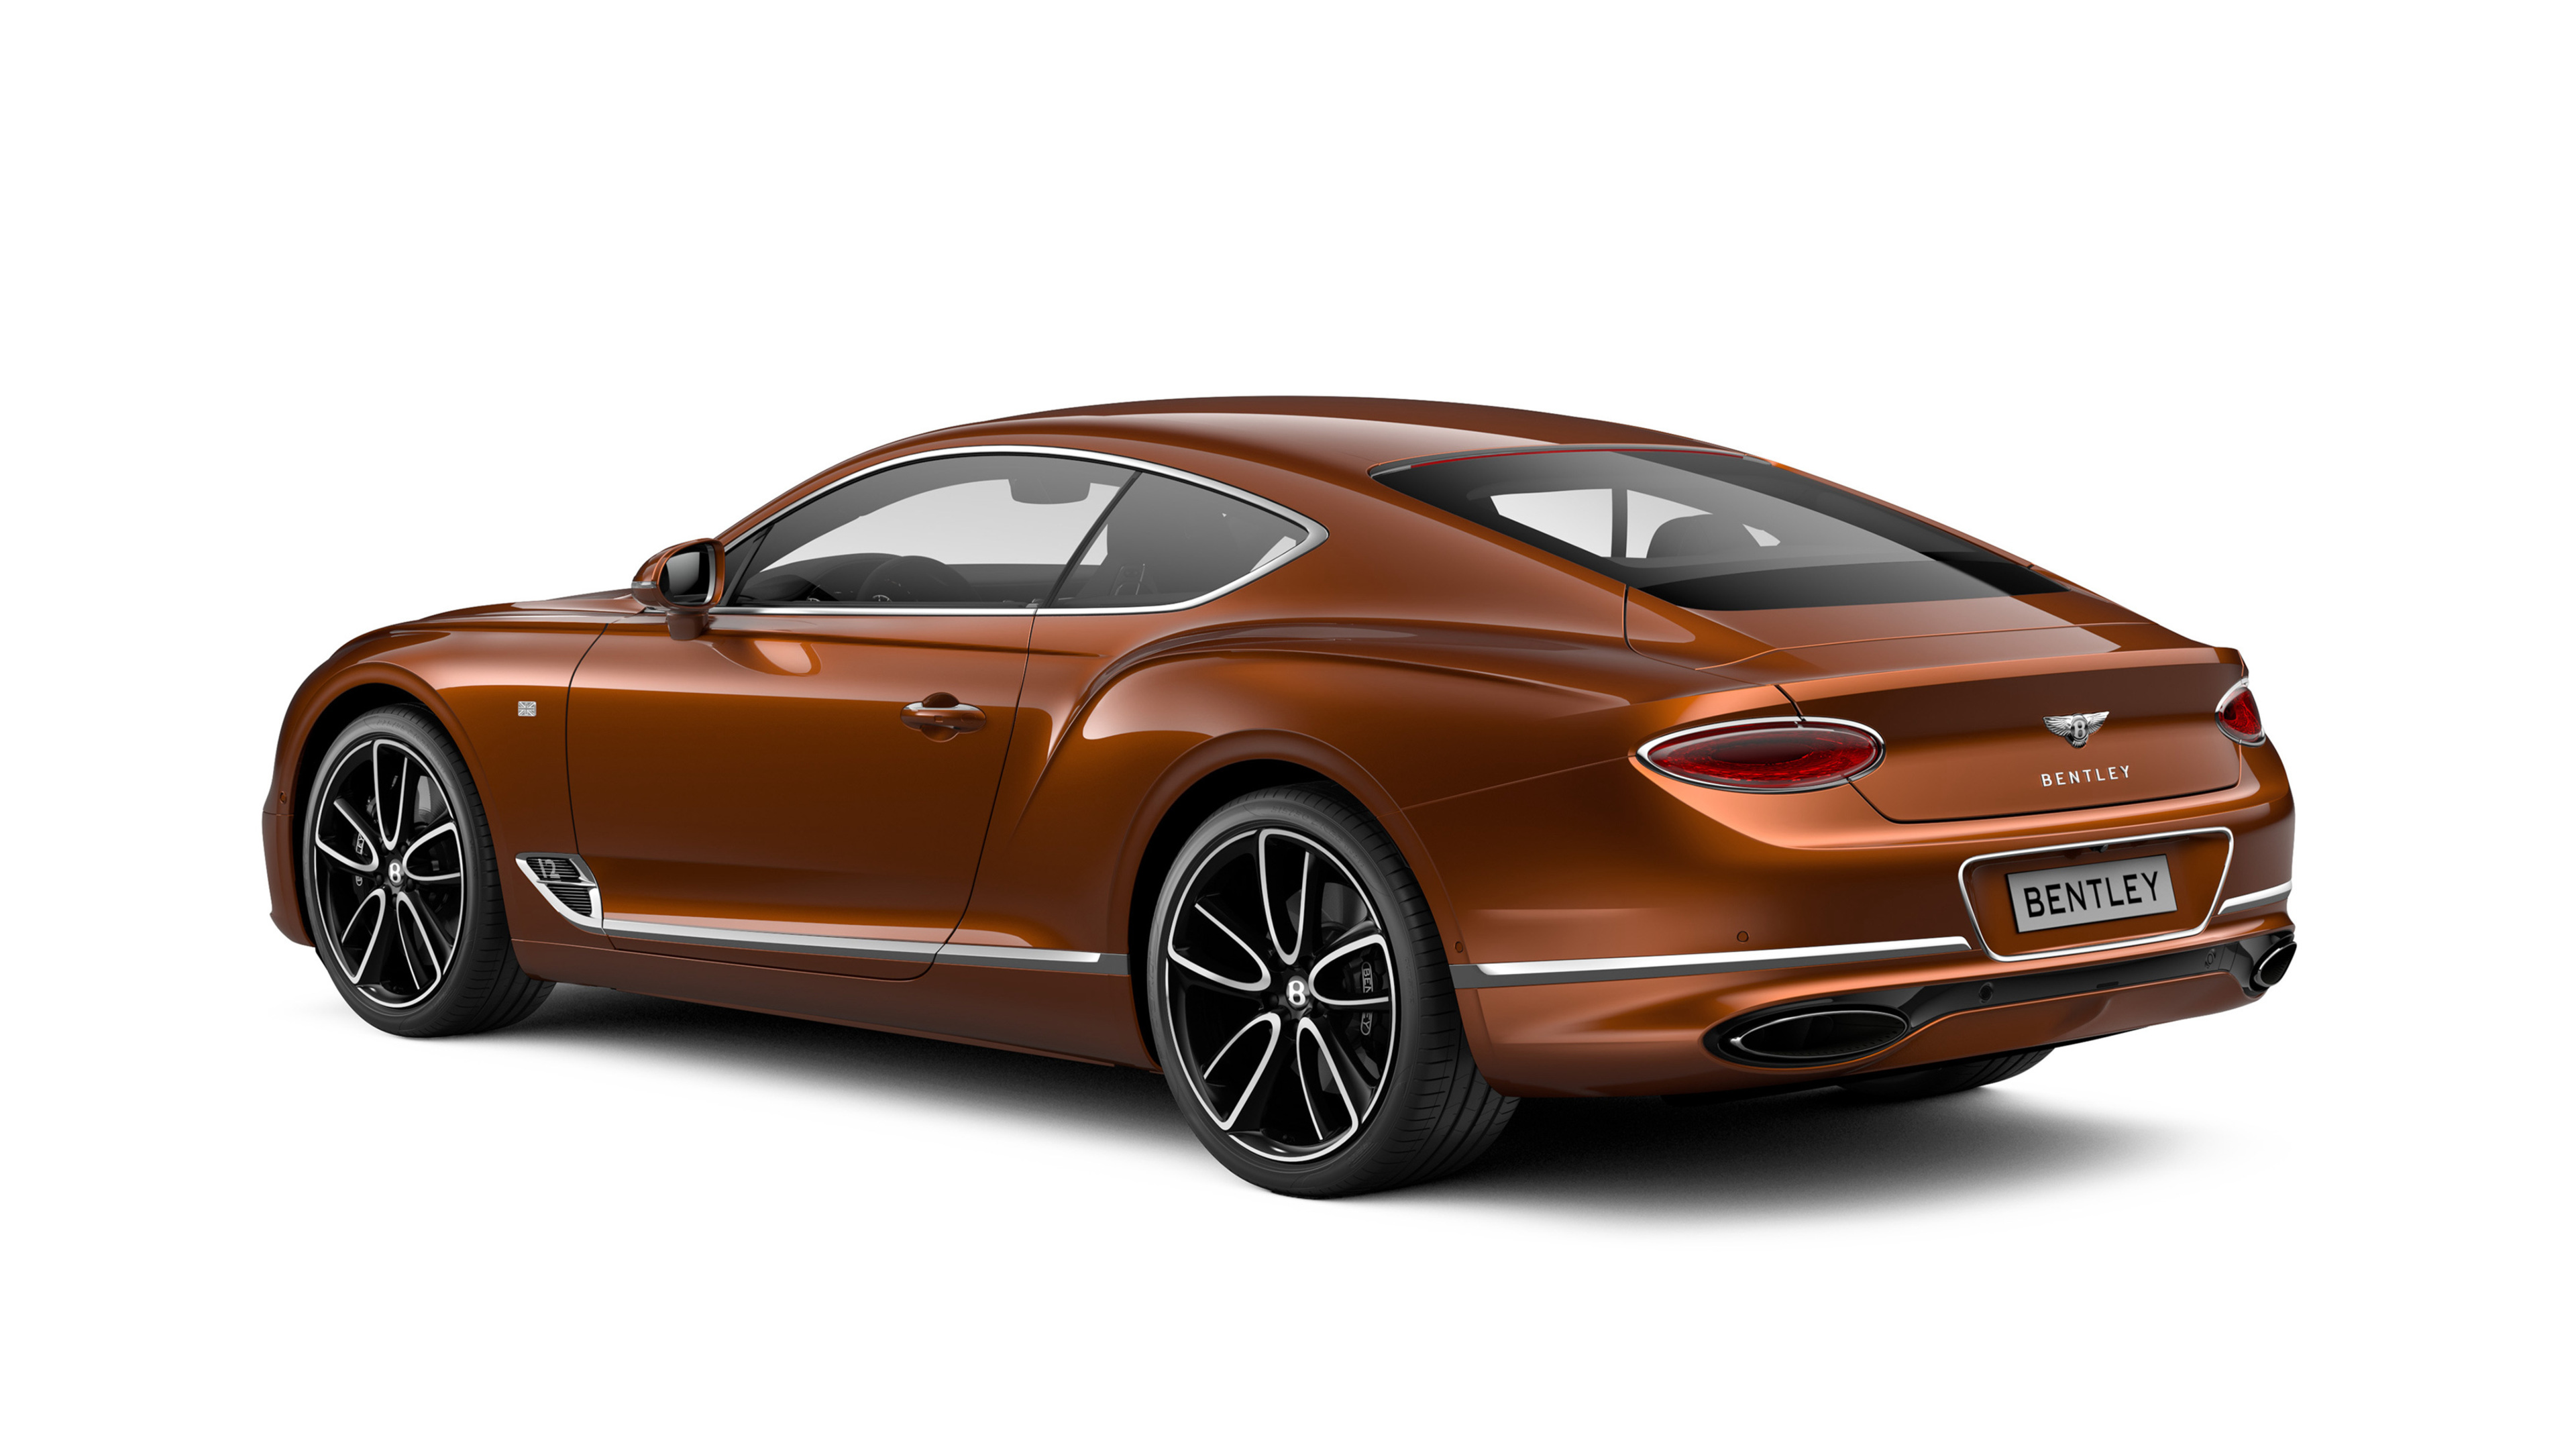 2018 bentley continental gt 4k 1539108186 - 2018 Bentley Continental Gt 4k - hd-wallpapers, cars wallpapers, bentley wallpapers, bentley continental wallpapers, 4k-wallpapers, 2018 cars wallpapers